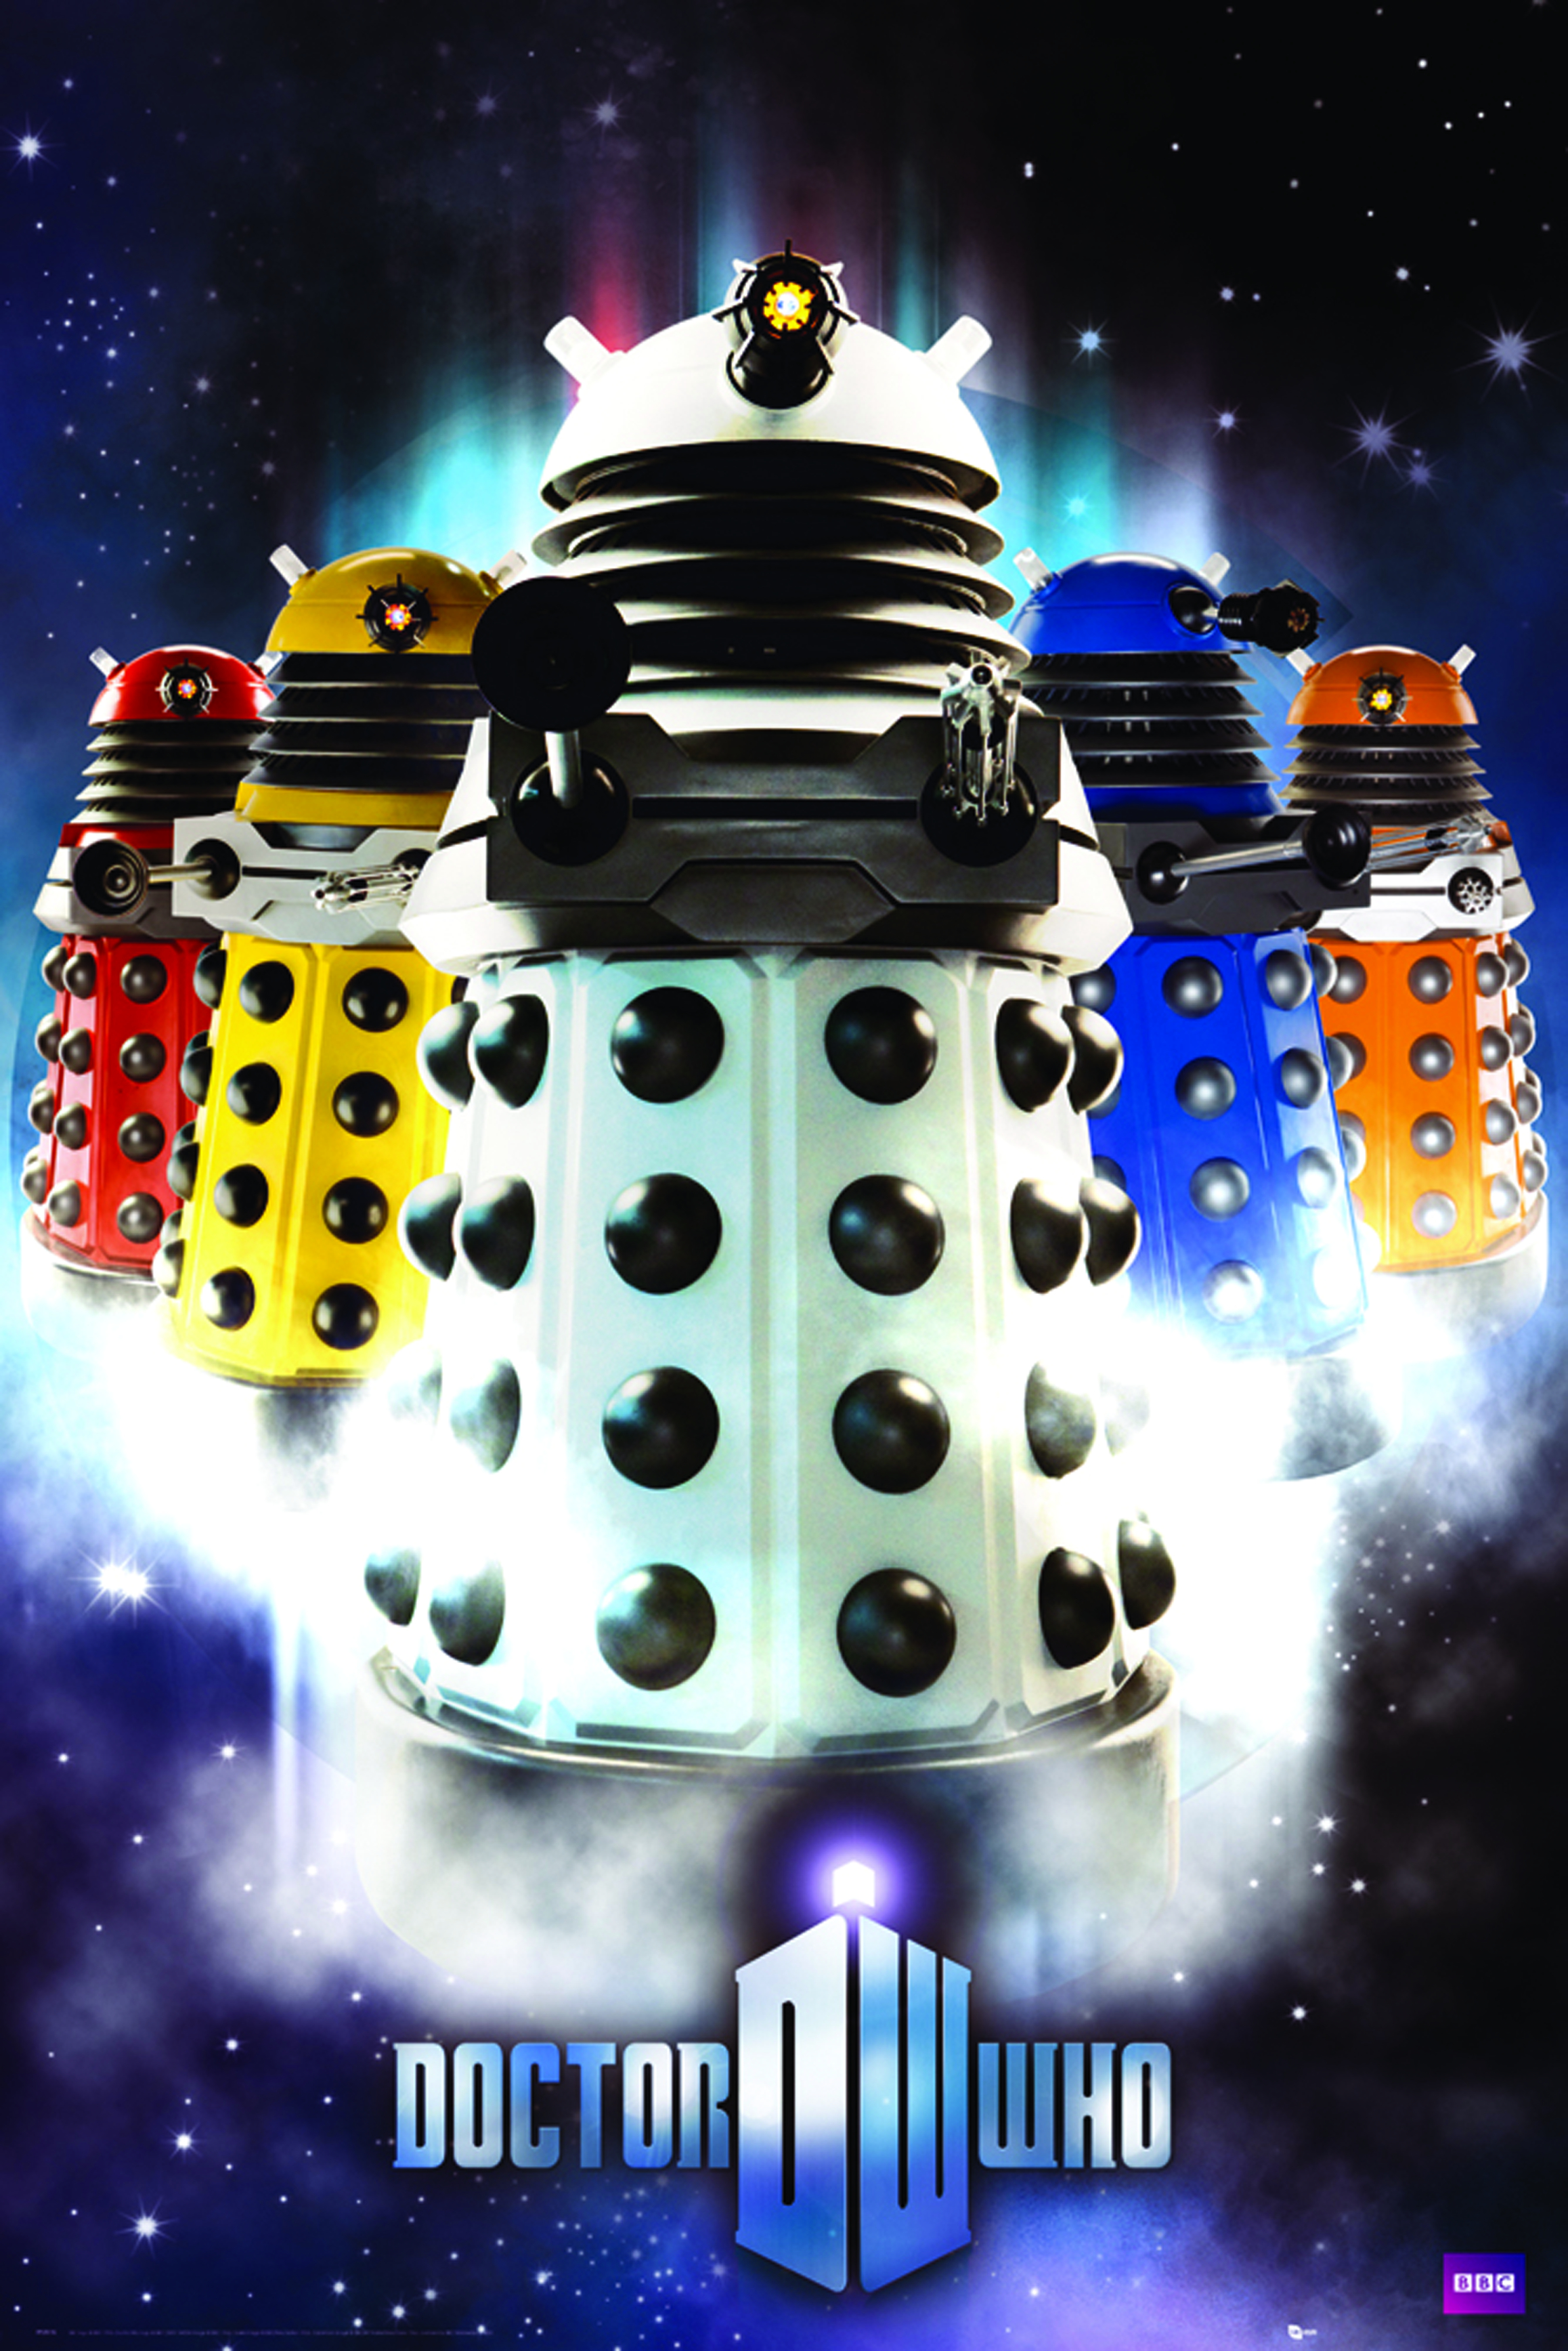 DOCTOR WHO DALEKS 24X36 POSTER